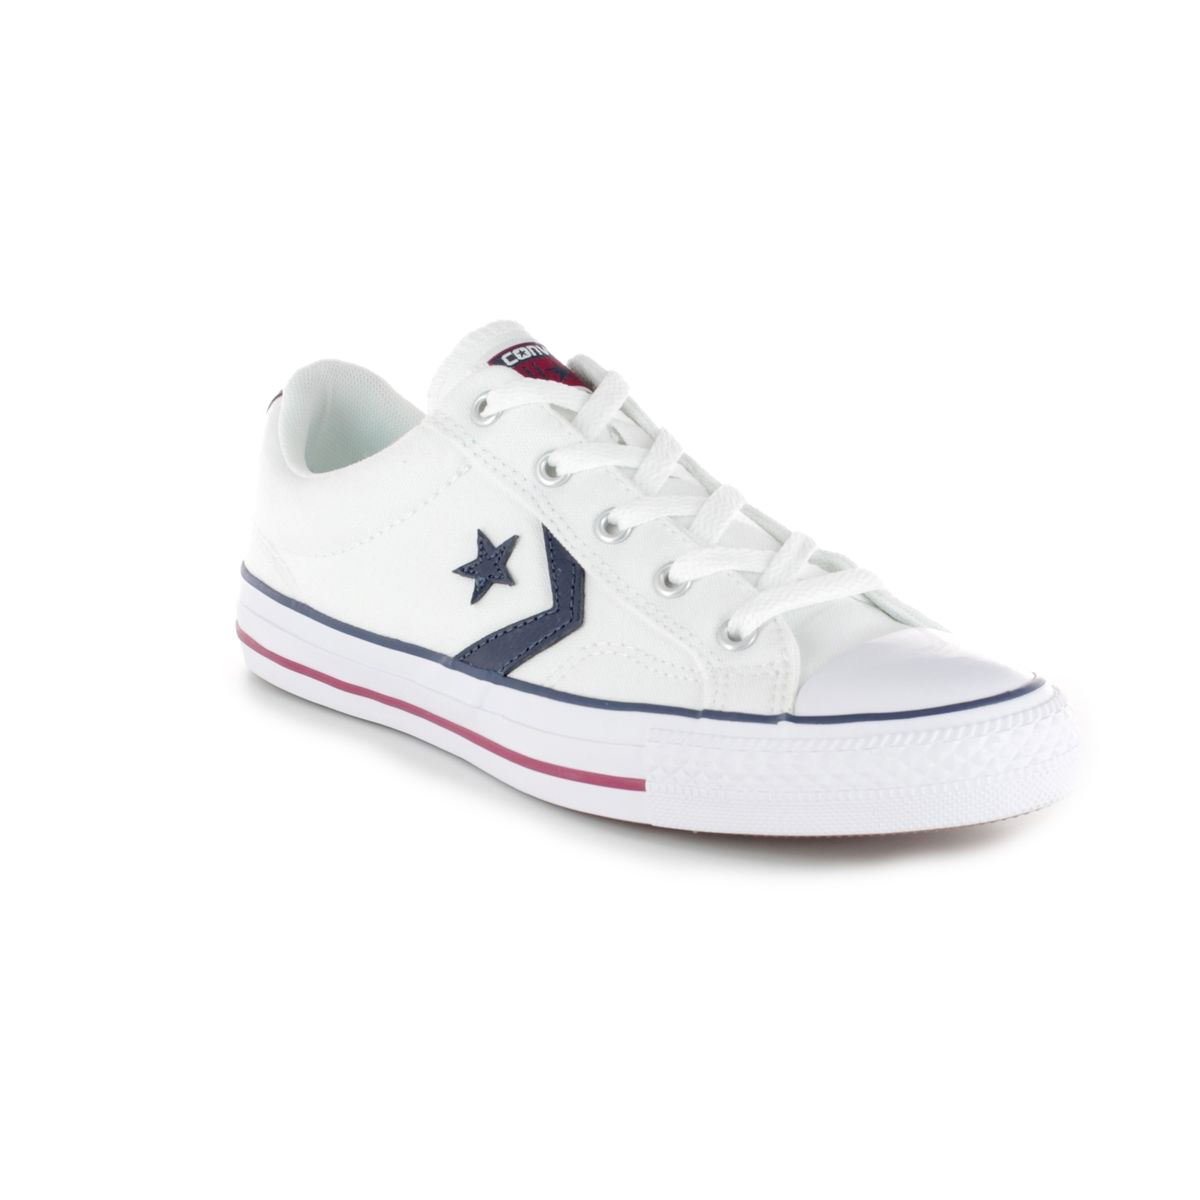 c893dcf5b ... coupon code for converse trainers white multi 144151c star player ox  87f60 e57c5